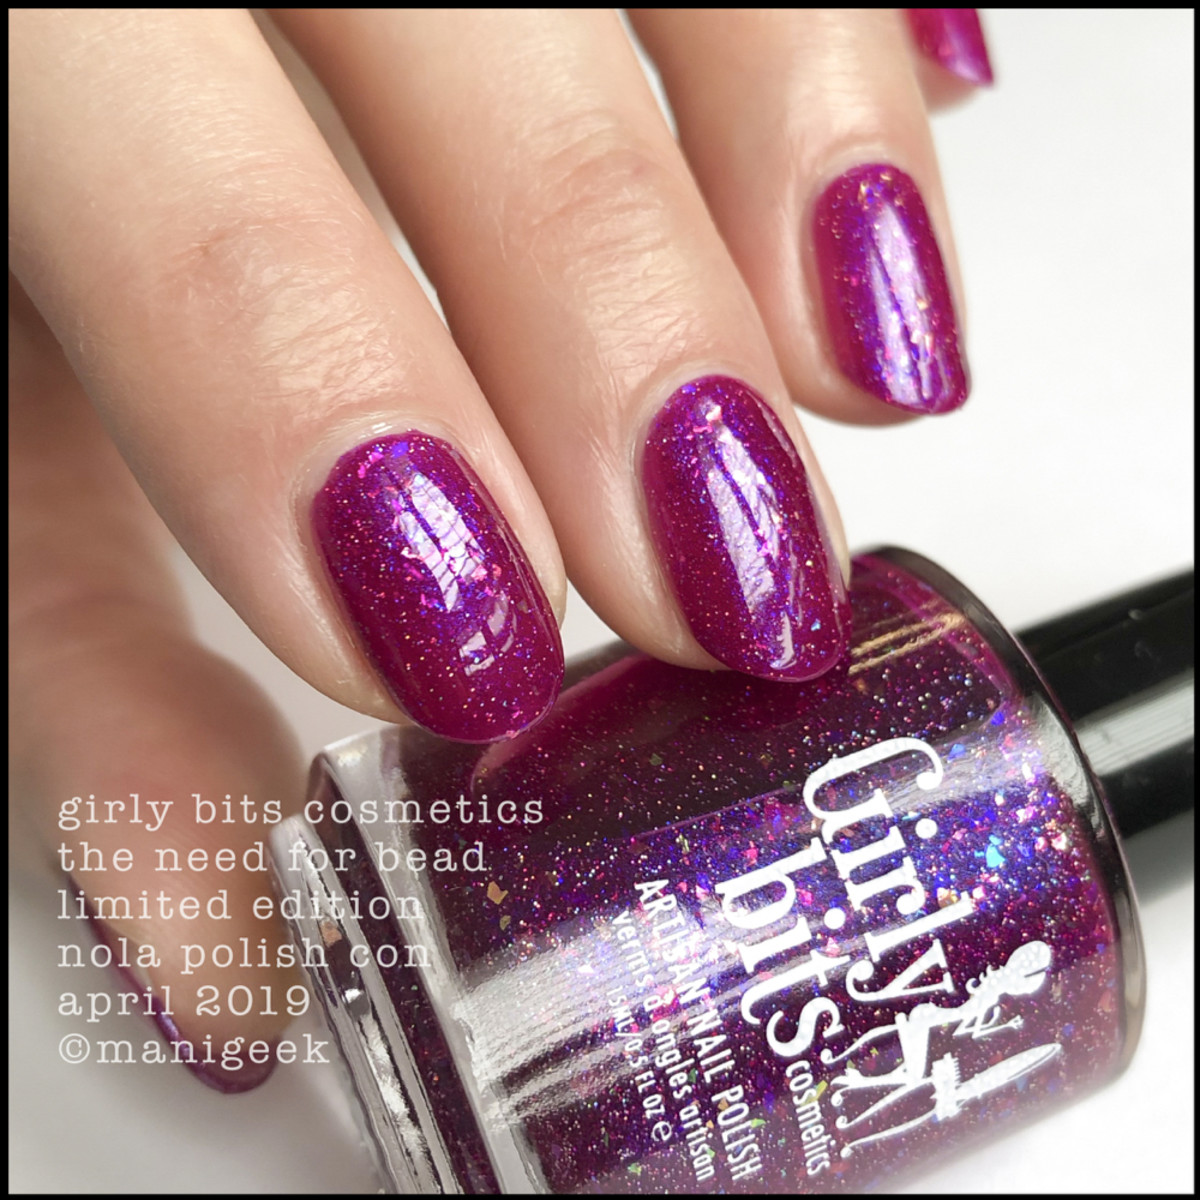 Girly Bits The Need for Bead - LE Girly Bits Polish Con NOLA April 2019